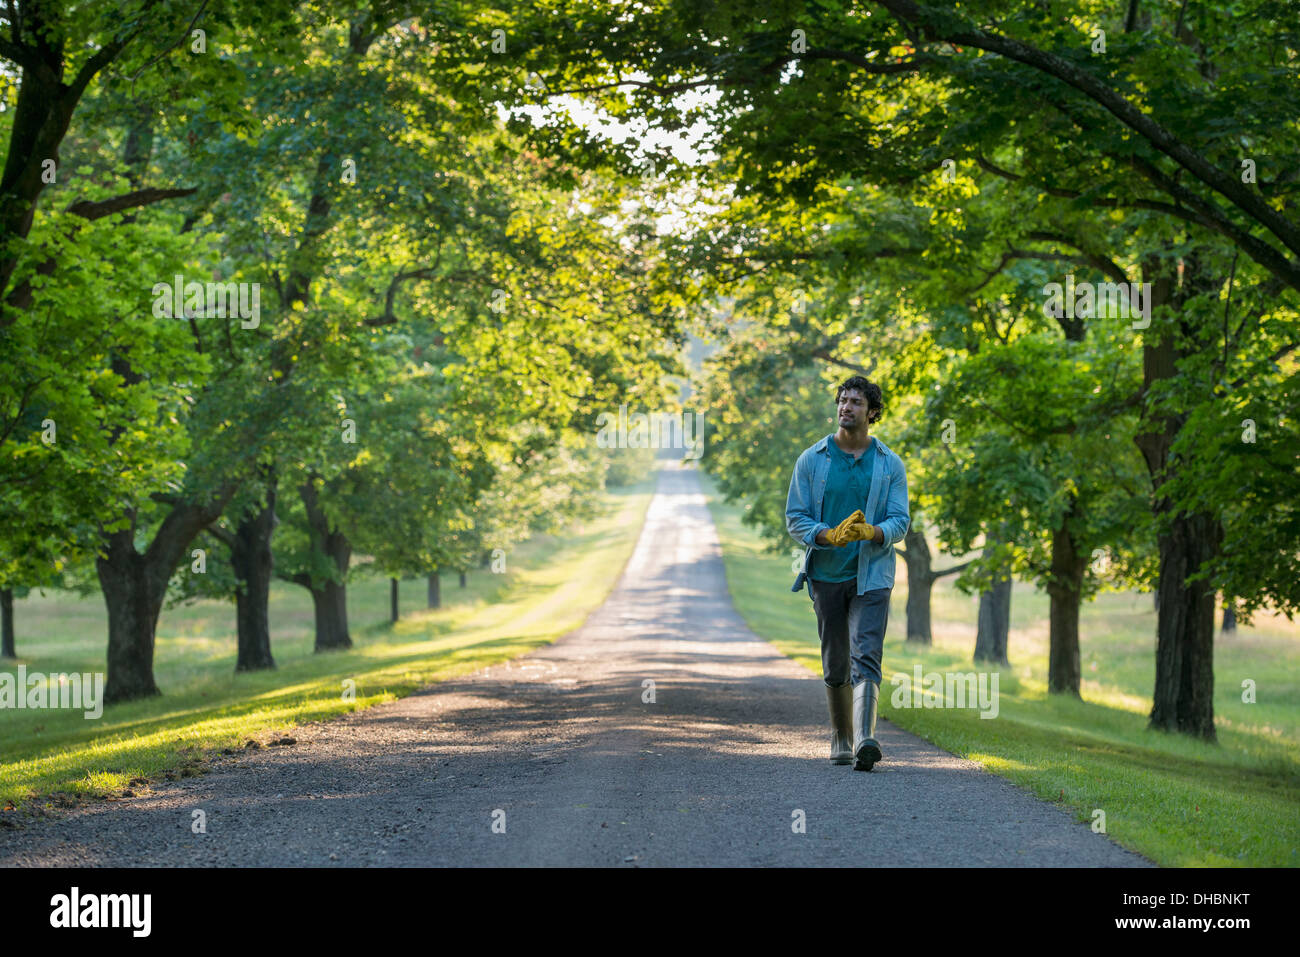 A man walking down a tree lined path. - Stock Image